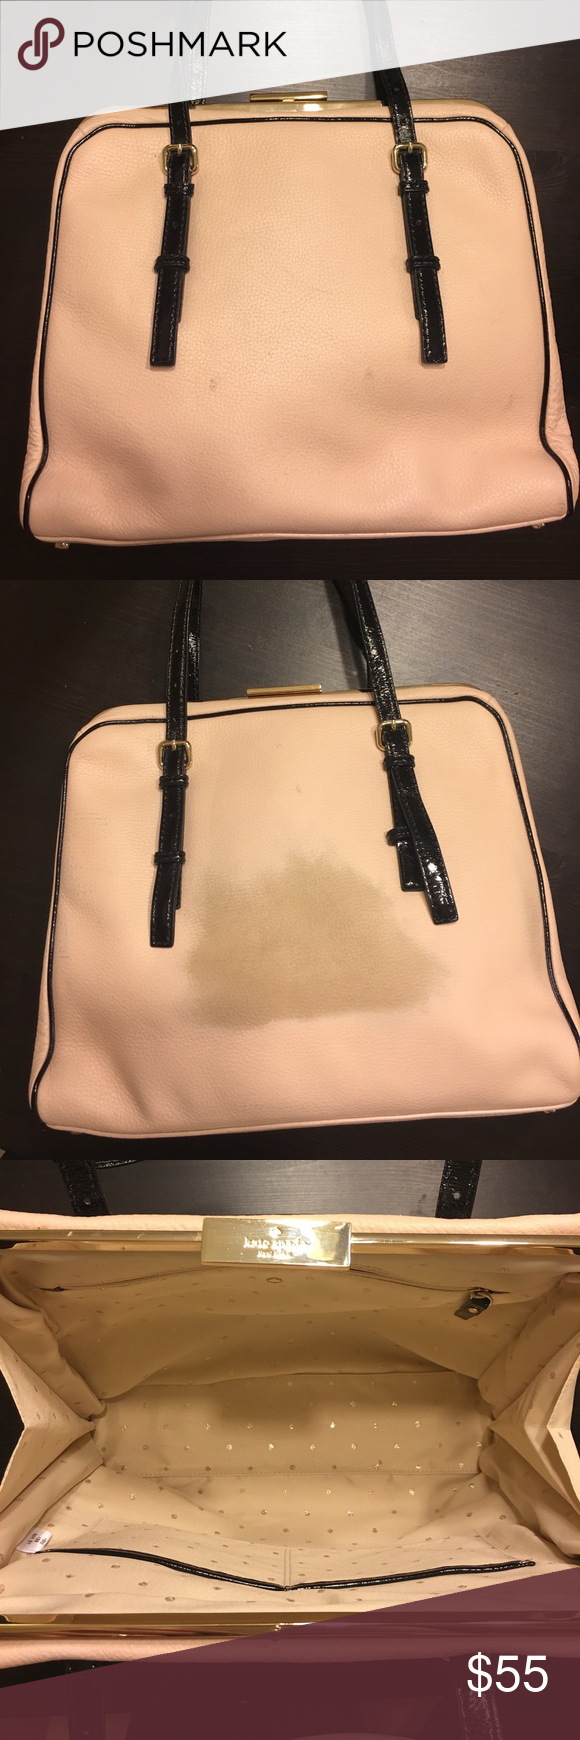 Kate spade bag Recently discovered what appears to be a 4x3 dimension of discoloration. The blush color may potentially be able to be restored by a leather/shoe repair. kate spade Bags